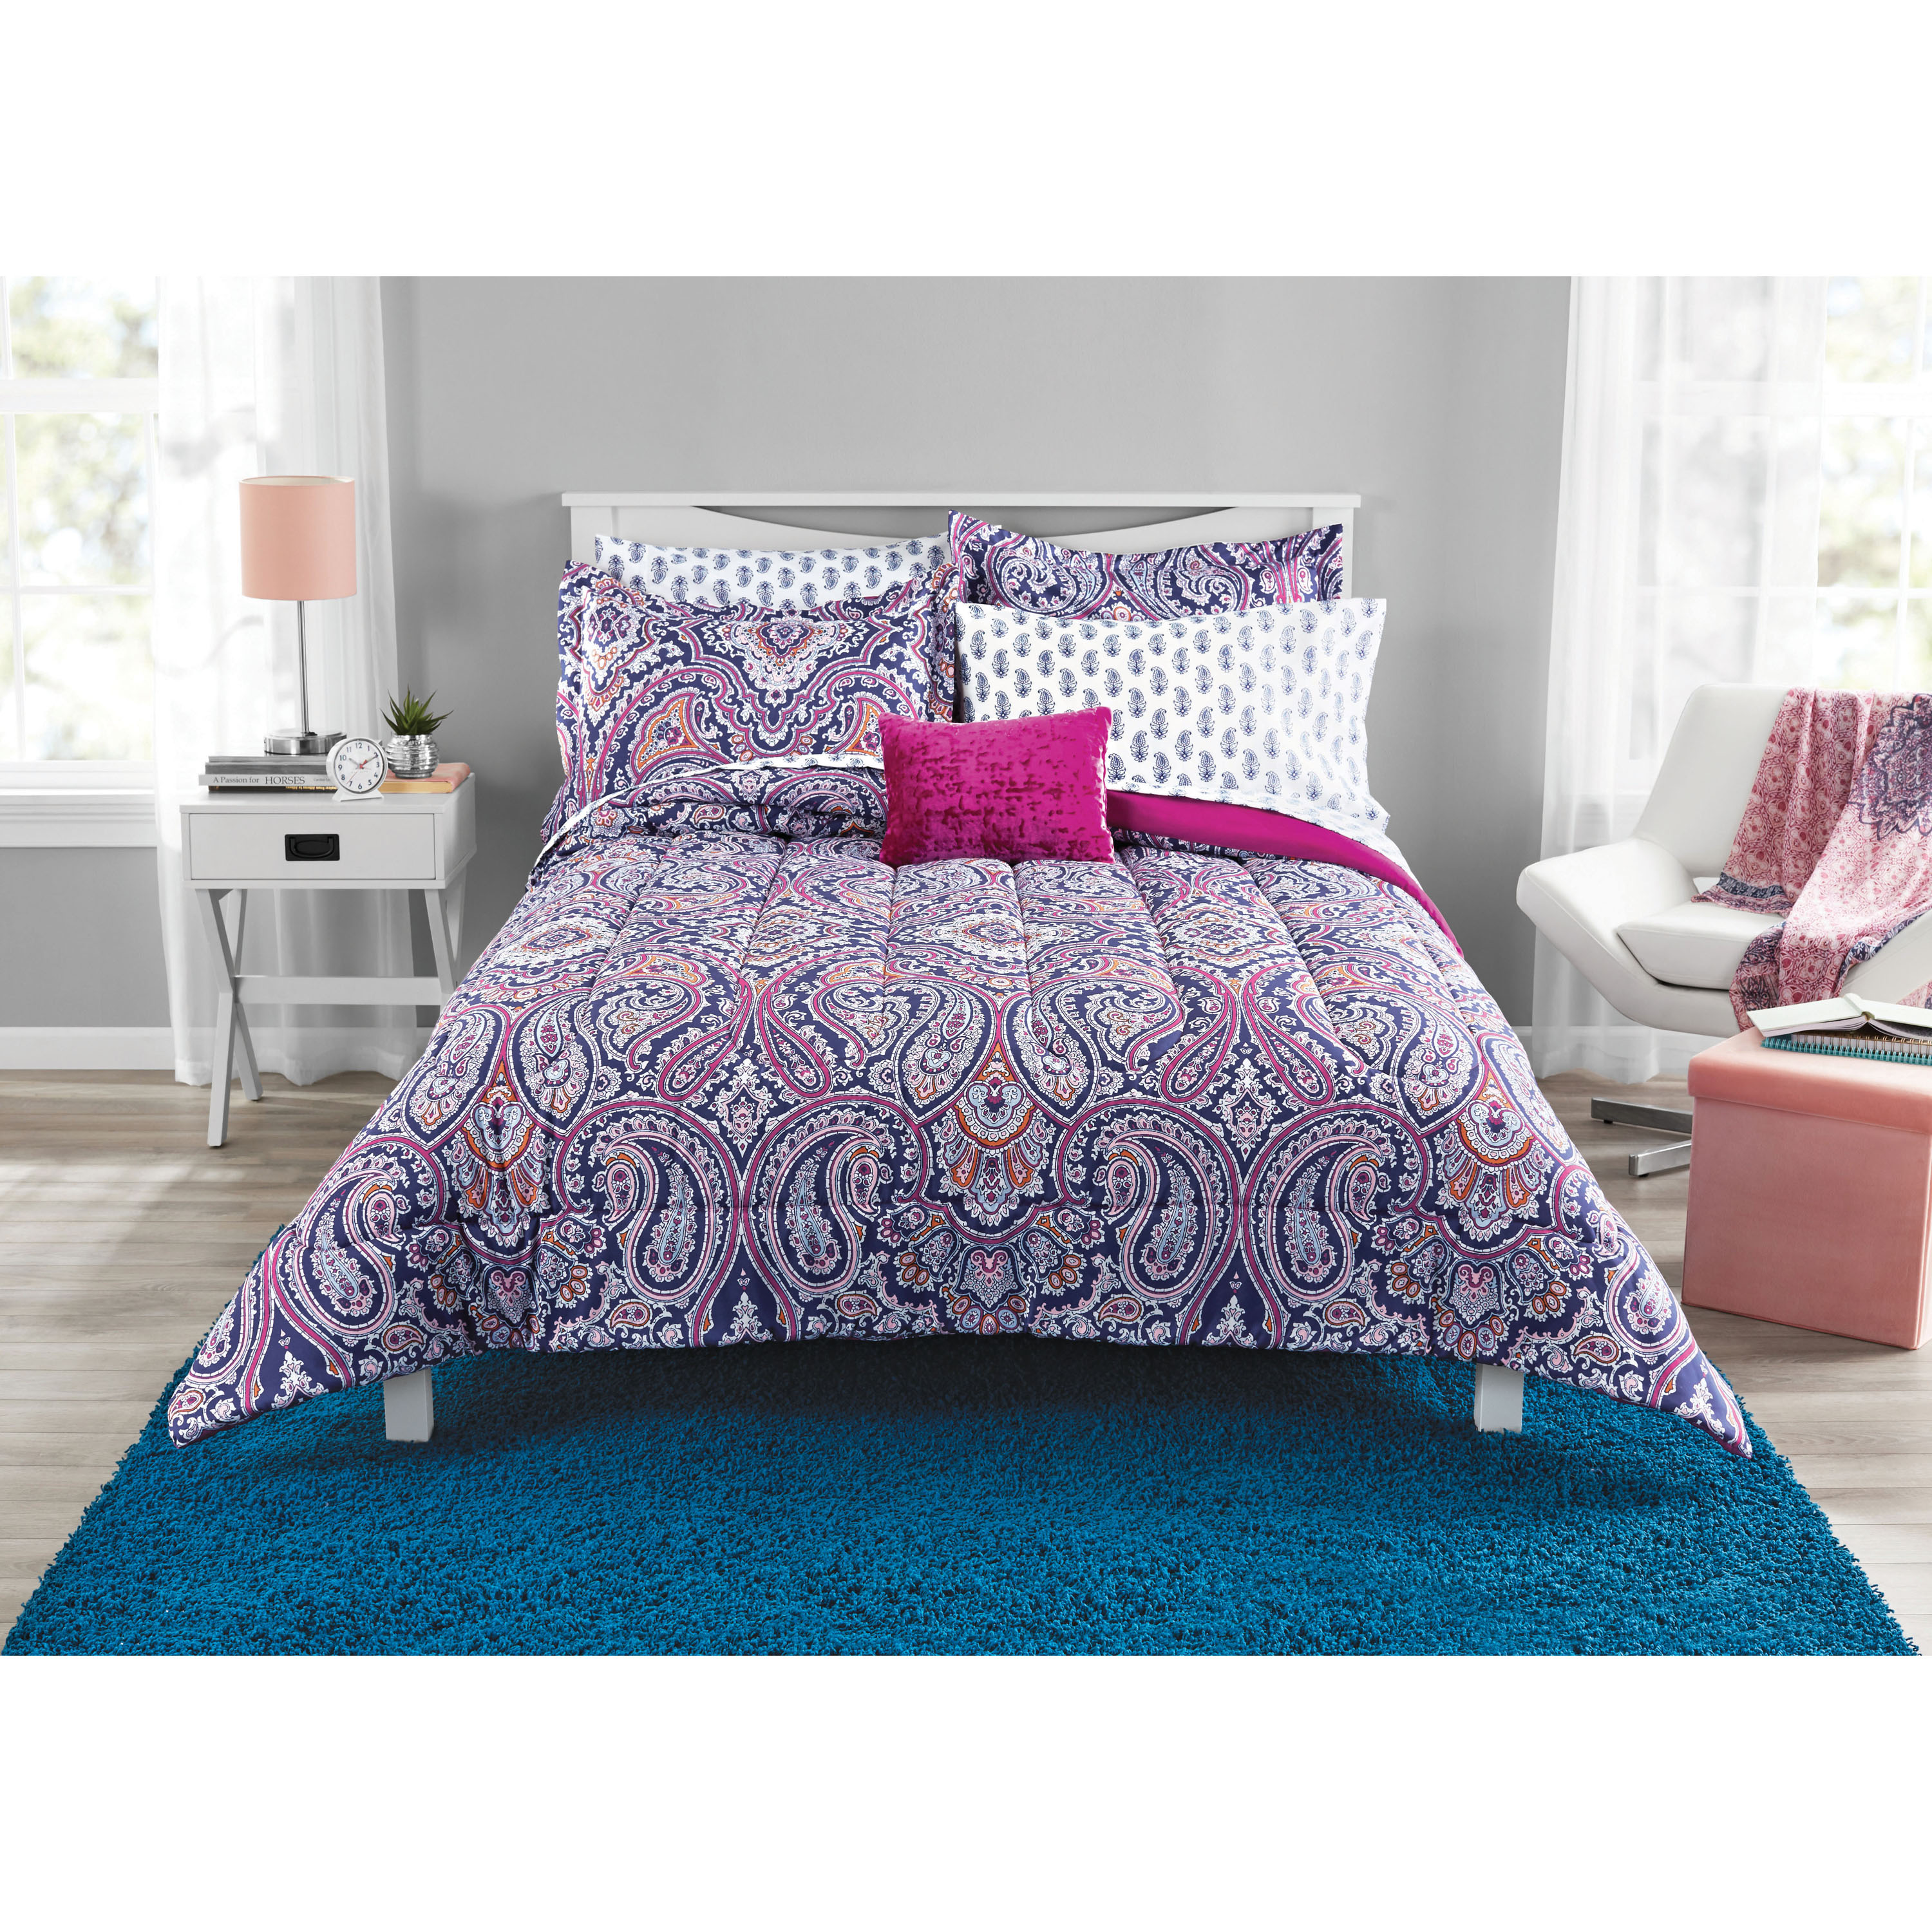 Mainstays Scarf Paisley Bed in a Bag Bedding Set, King